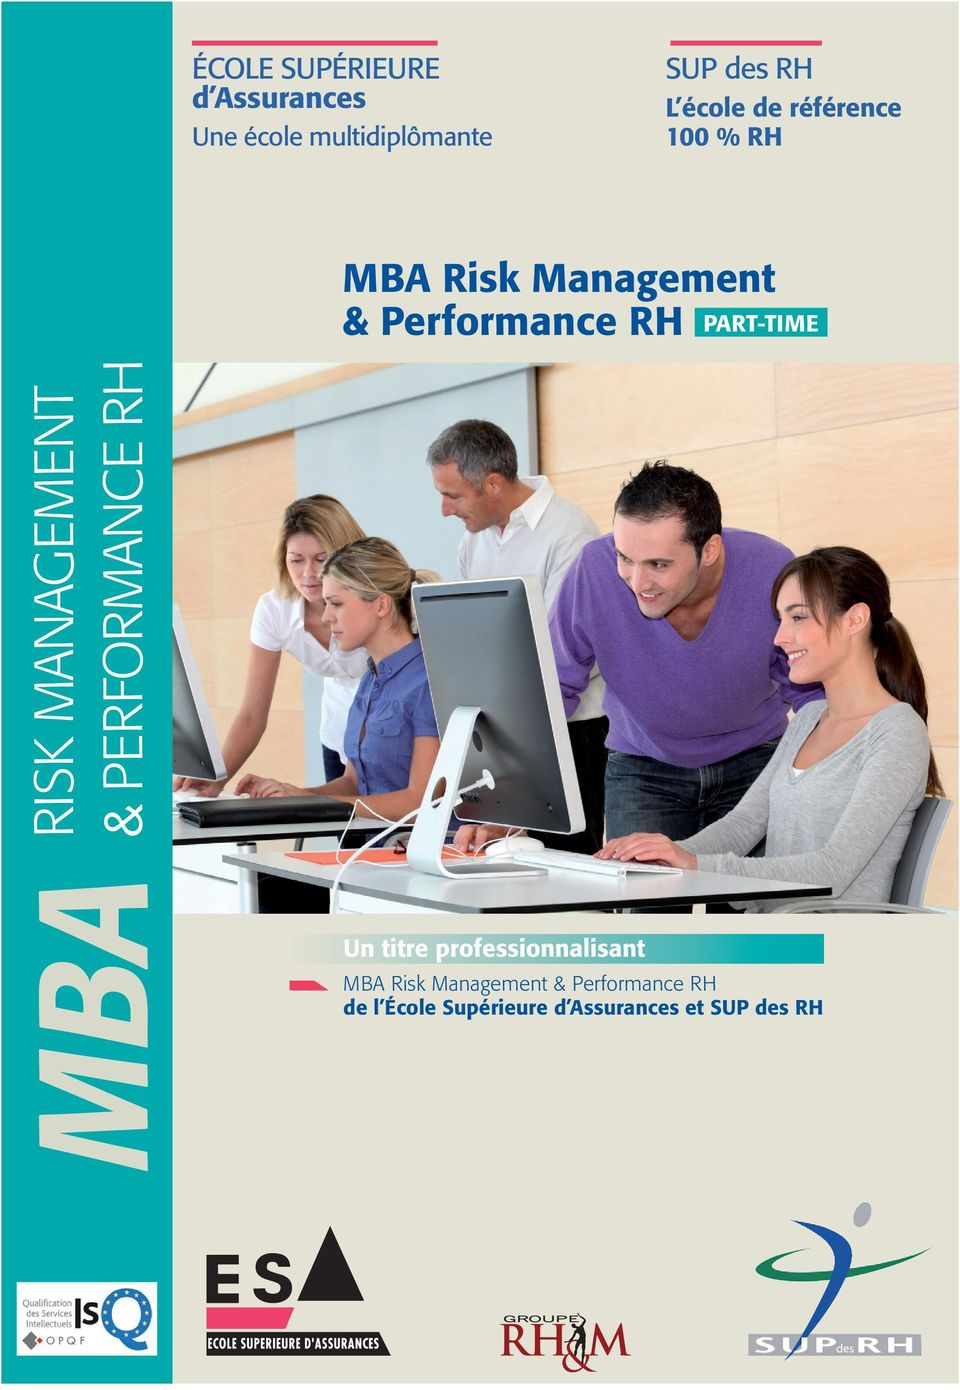 PART-TIME MBA RISK MANAGEMENT & PERFORMANCE RH Un titre